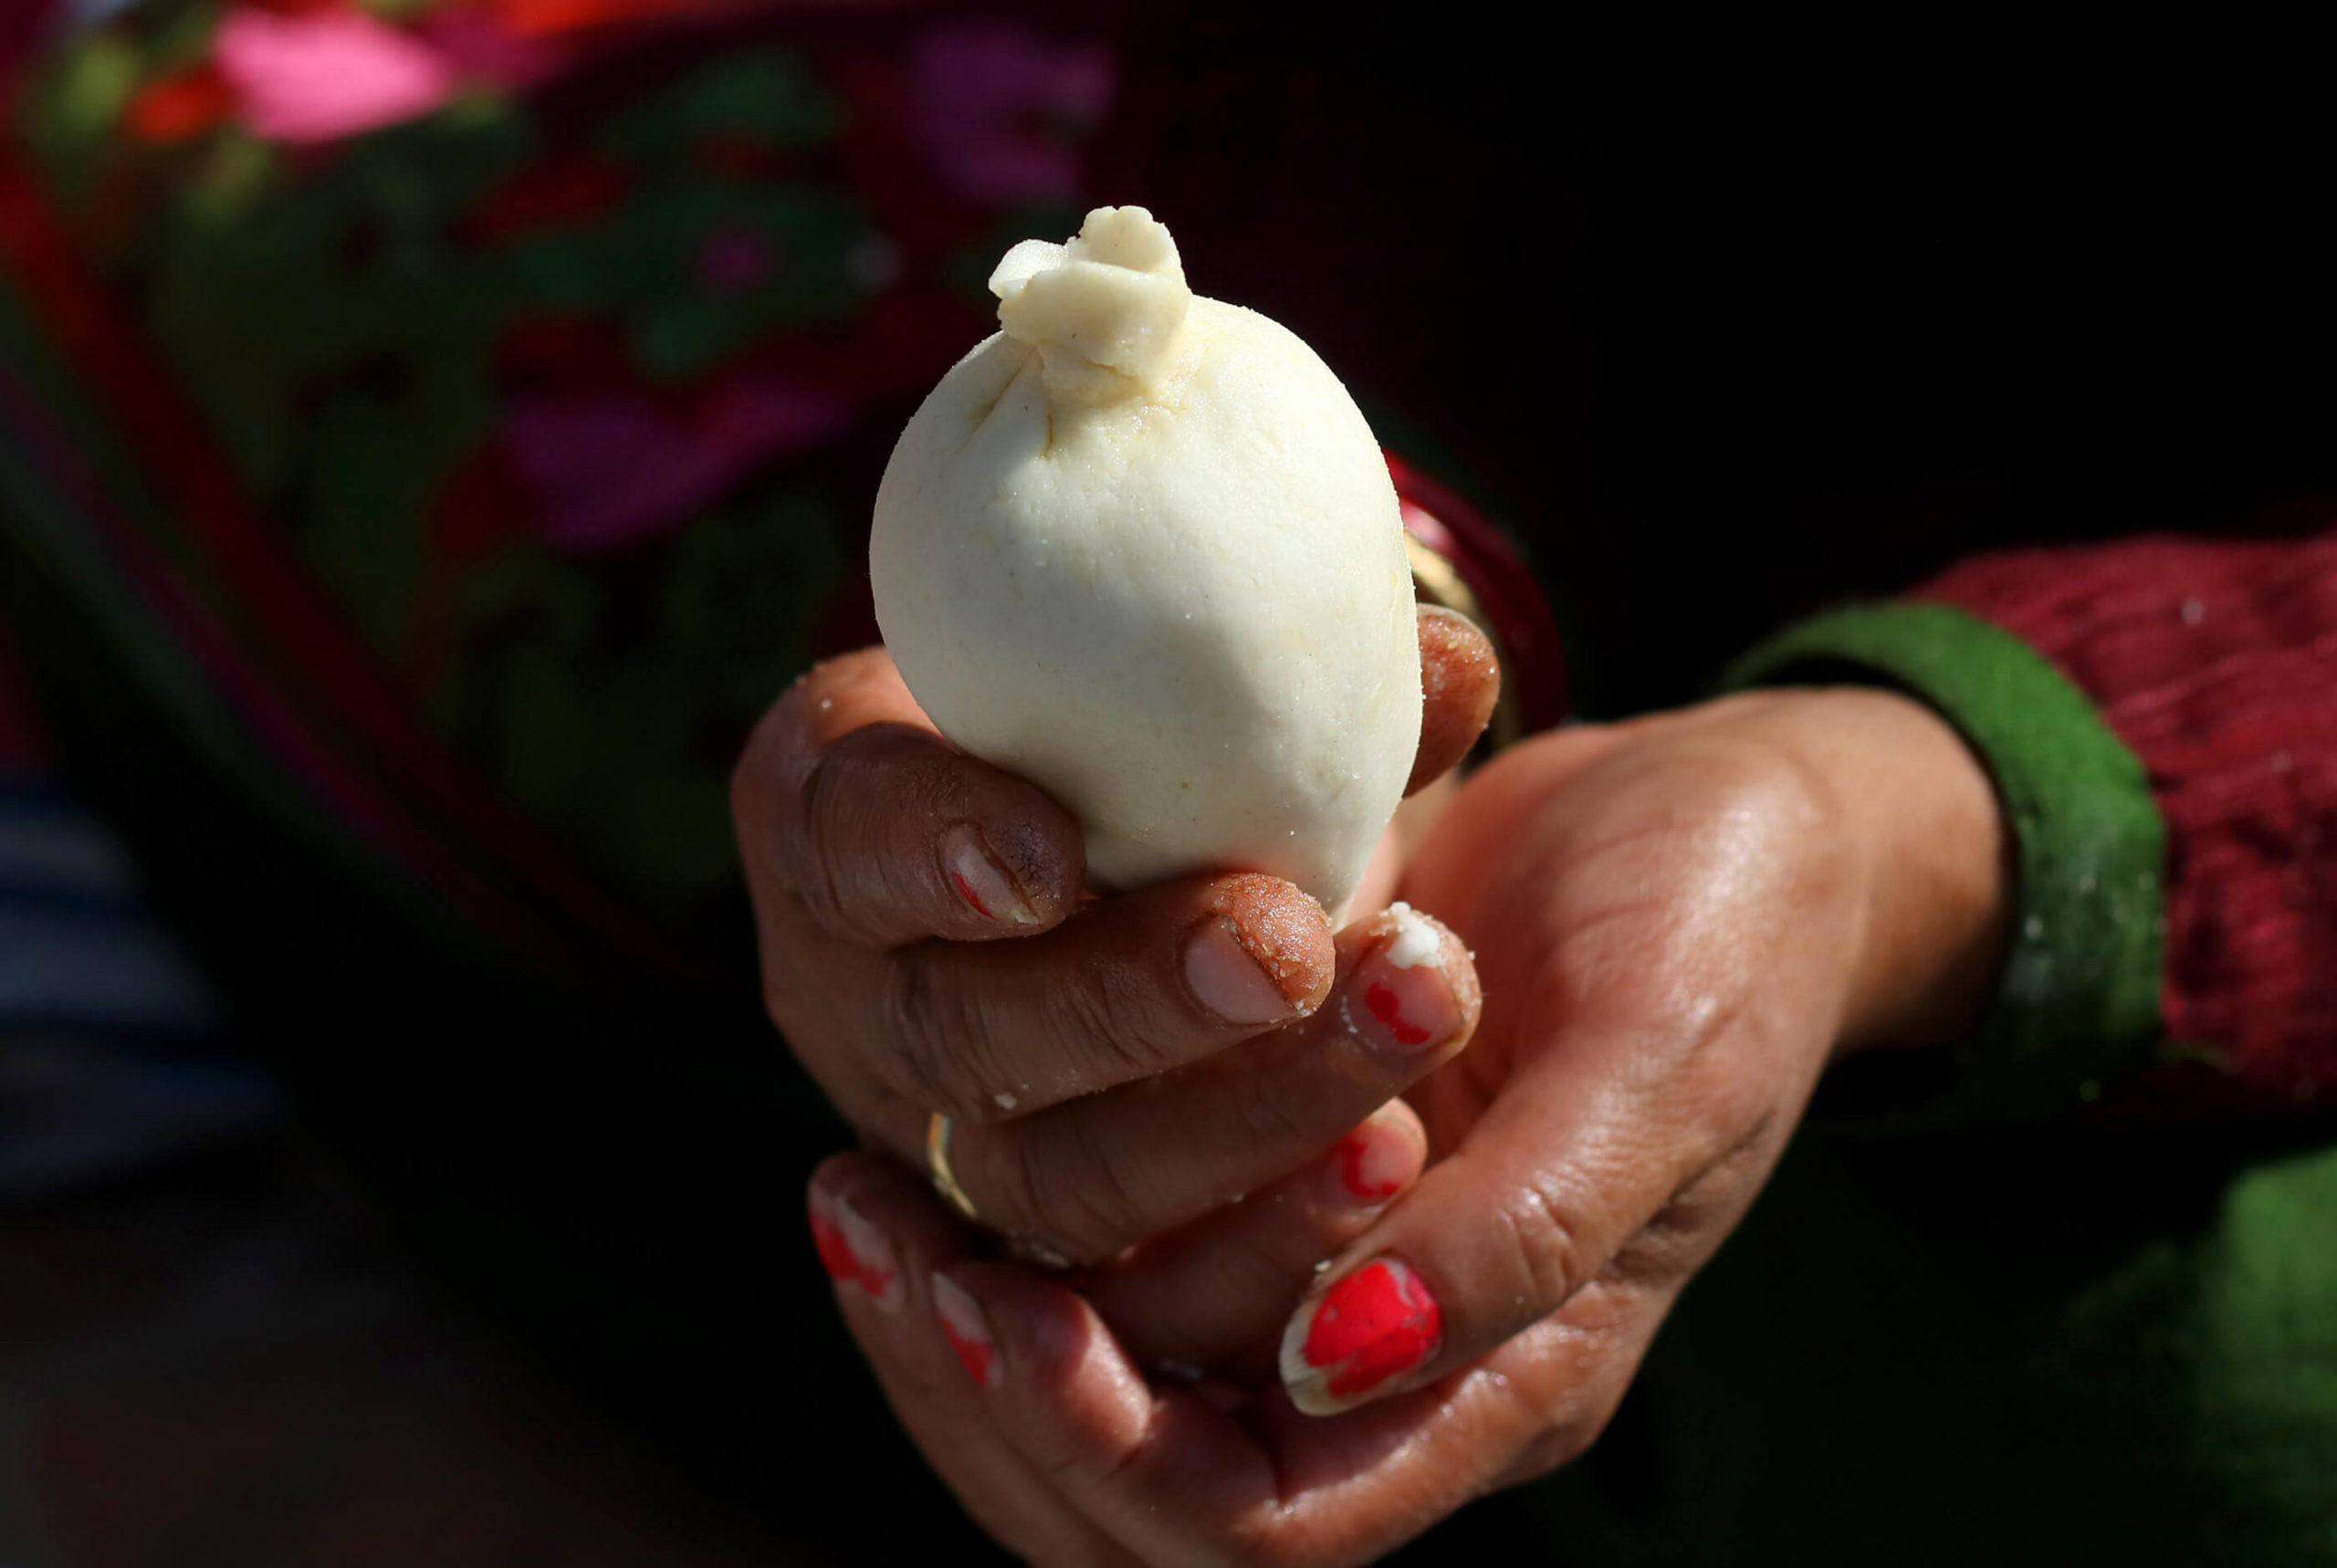 Yomari Punhi; a full moon day with the iconic newa cuisine, Yomari image